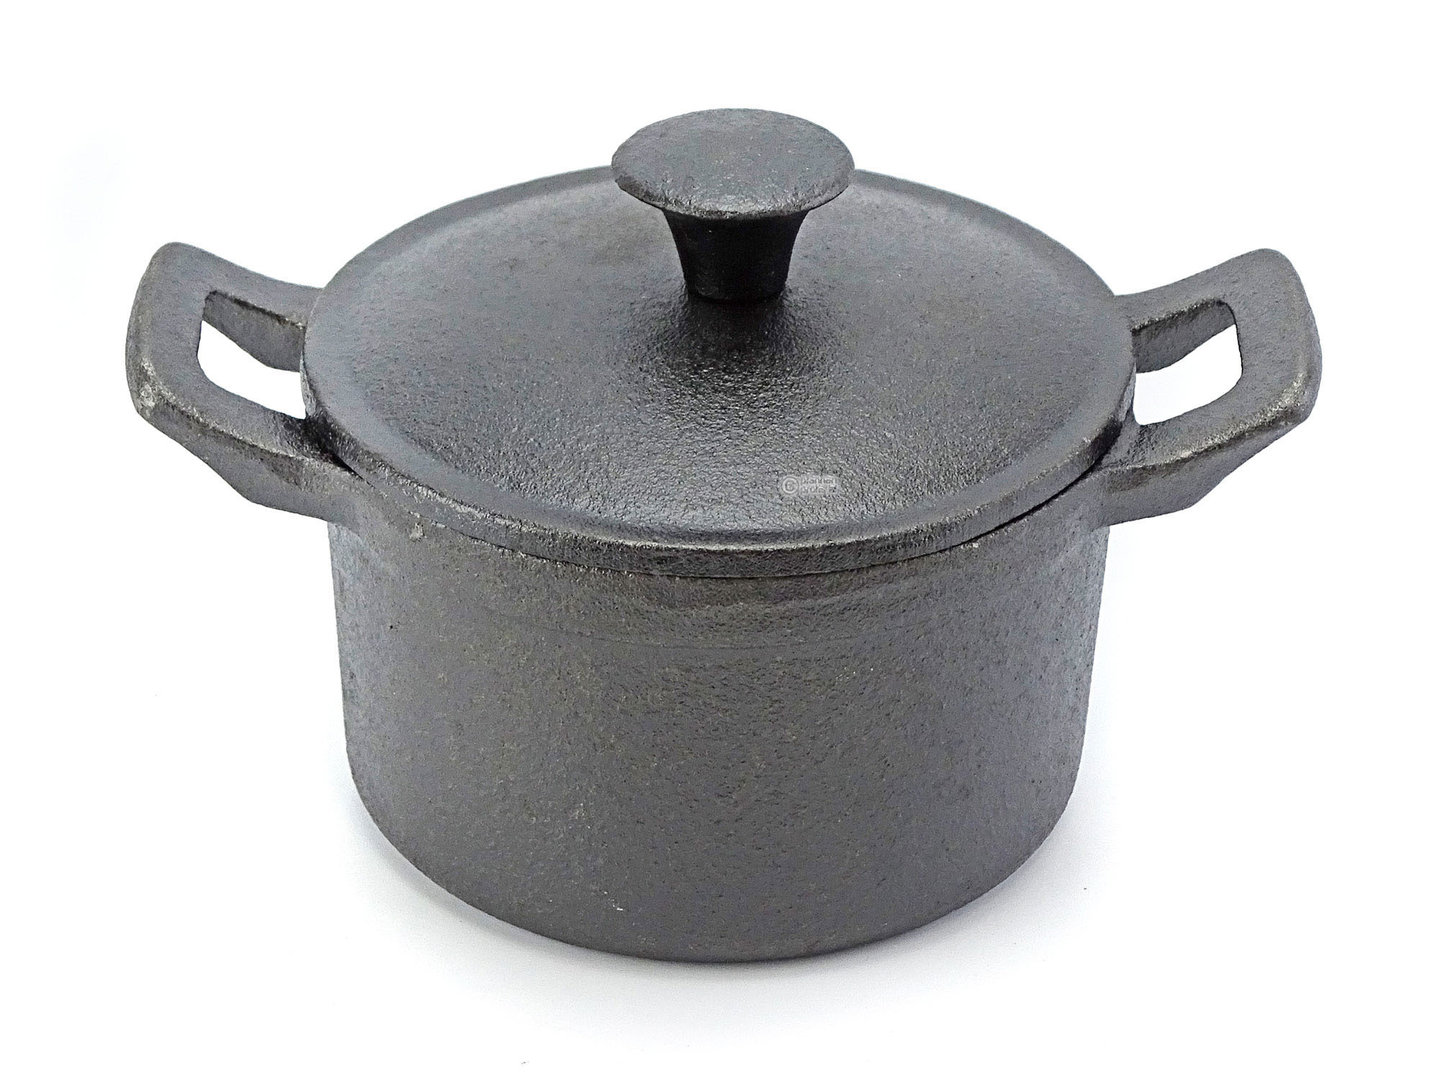 RONNEBY BRUK mini cast iron serving dish with lid RONDO 10 cm ROUND, pre-seasoned